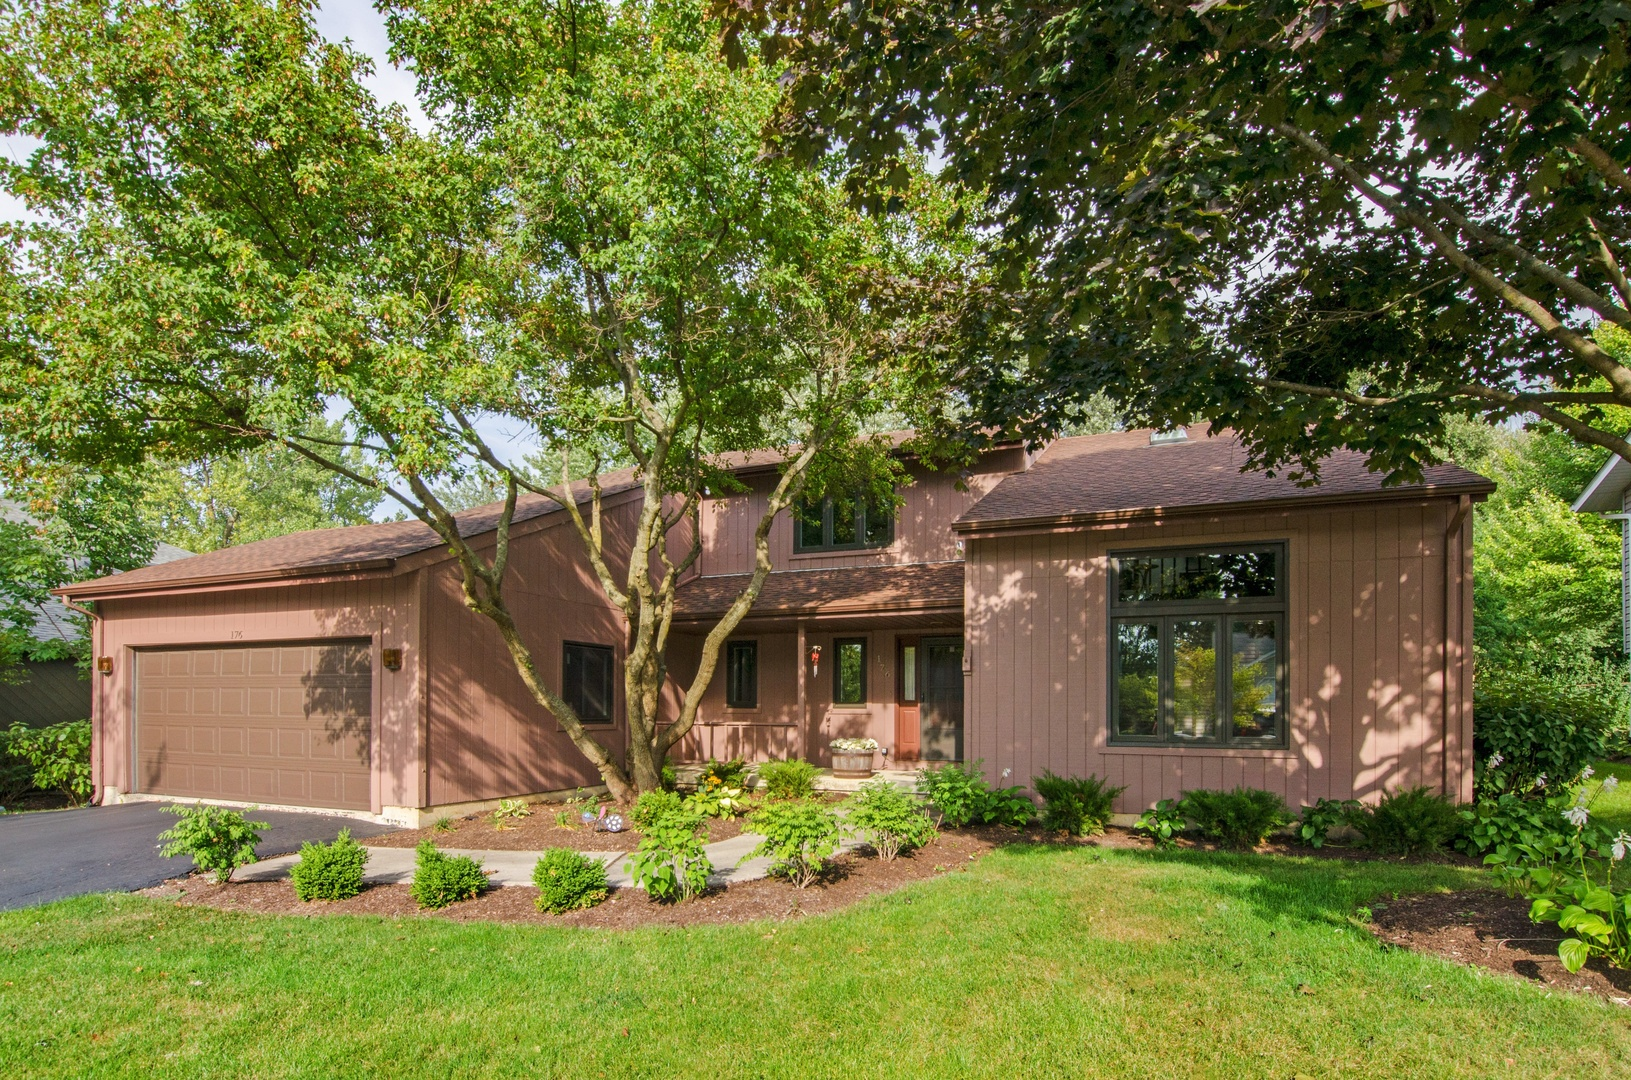 176 Vista Road, Lake Zurich, Illinois 60047